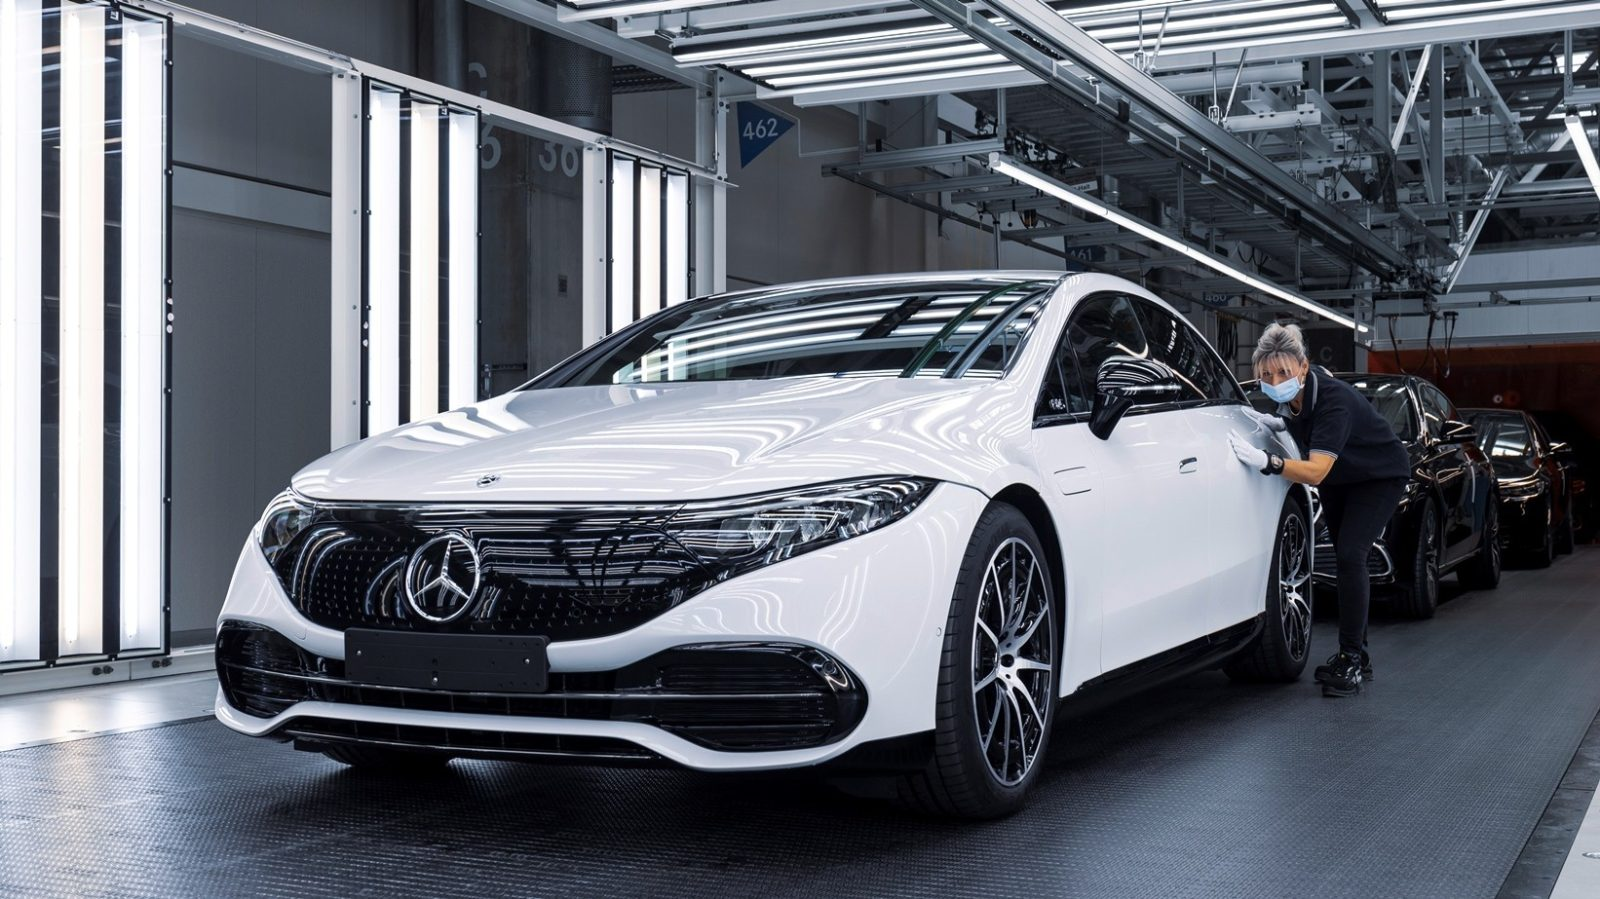 eqs-is-just-the-beginning-–-here's-the-future-of-mercedes'-ev-battery-tech